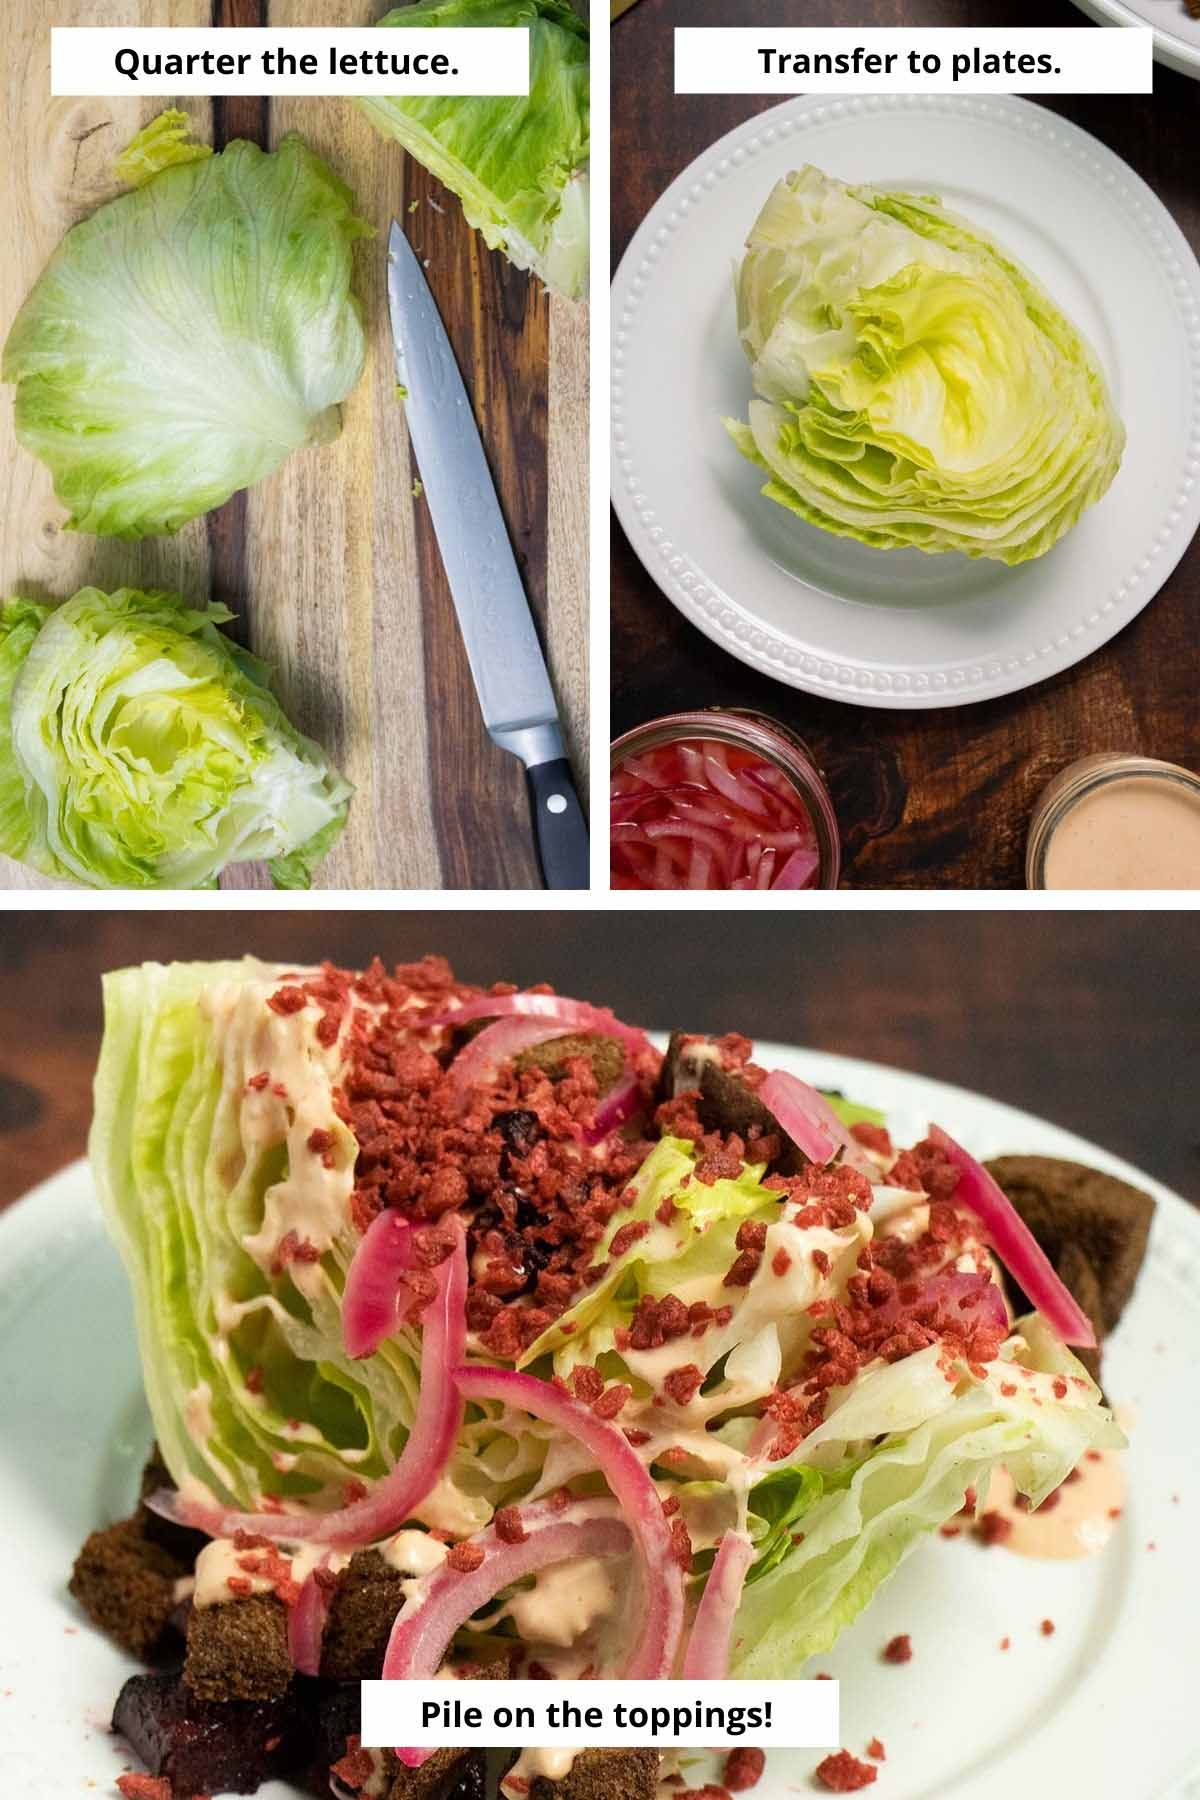 image collage showing preparing the lettuce for the wedge salad